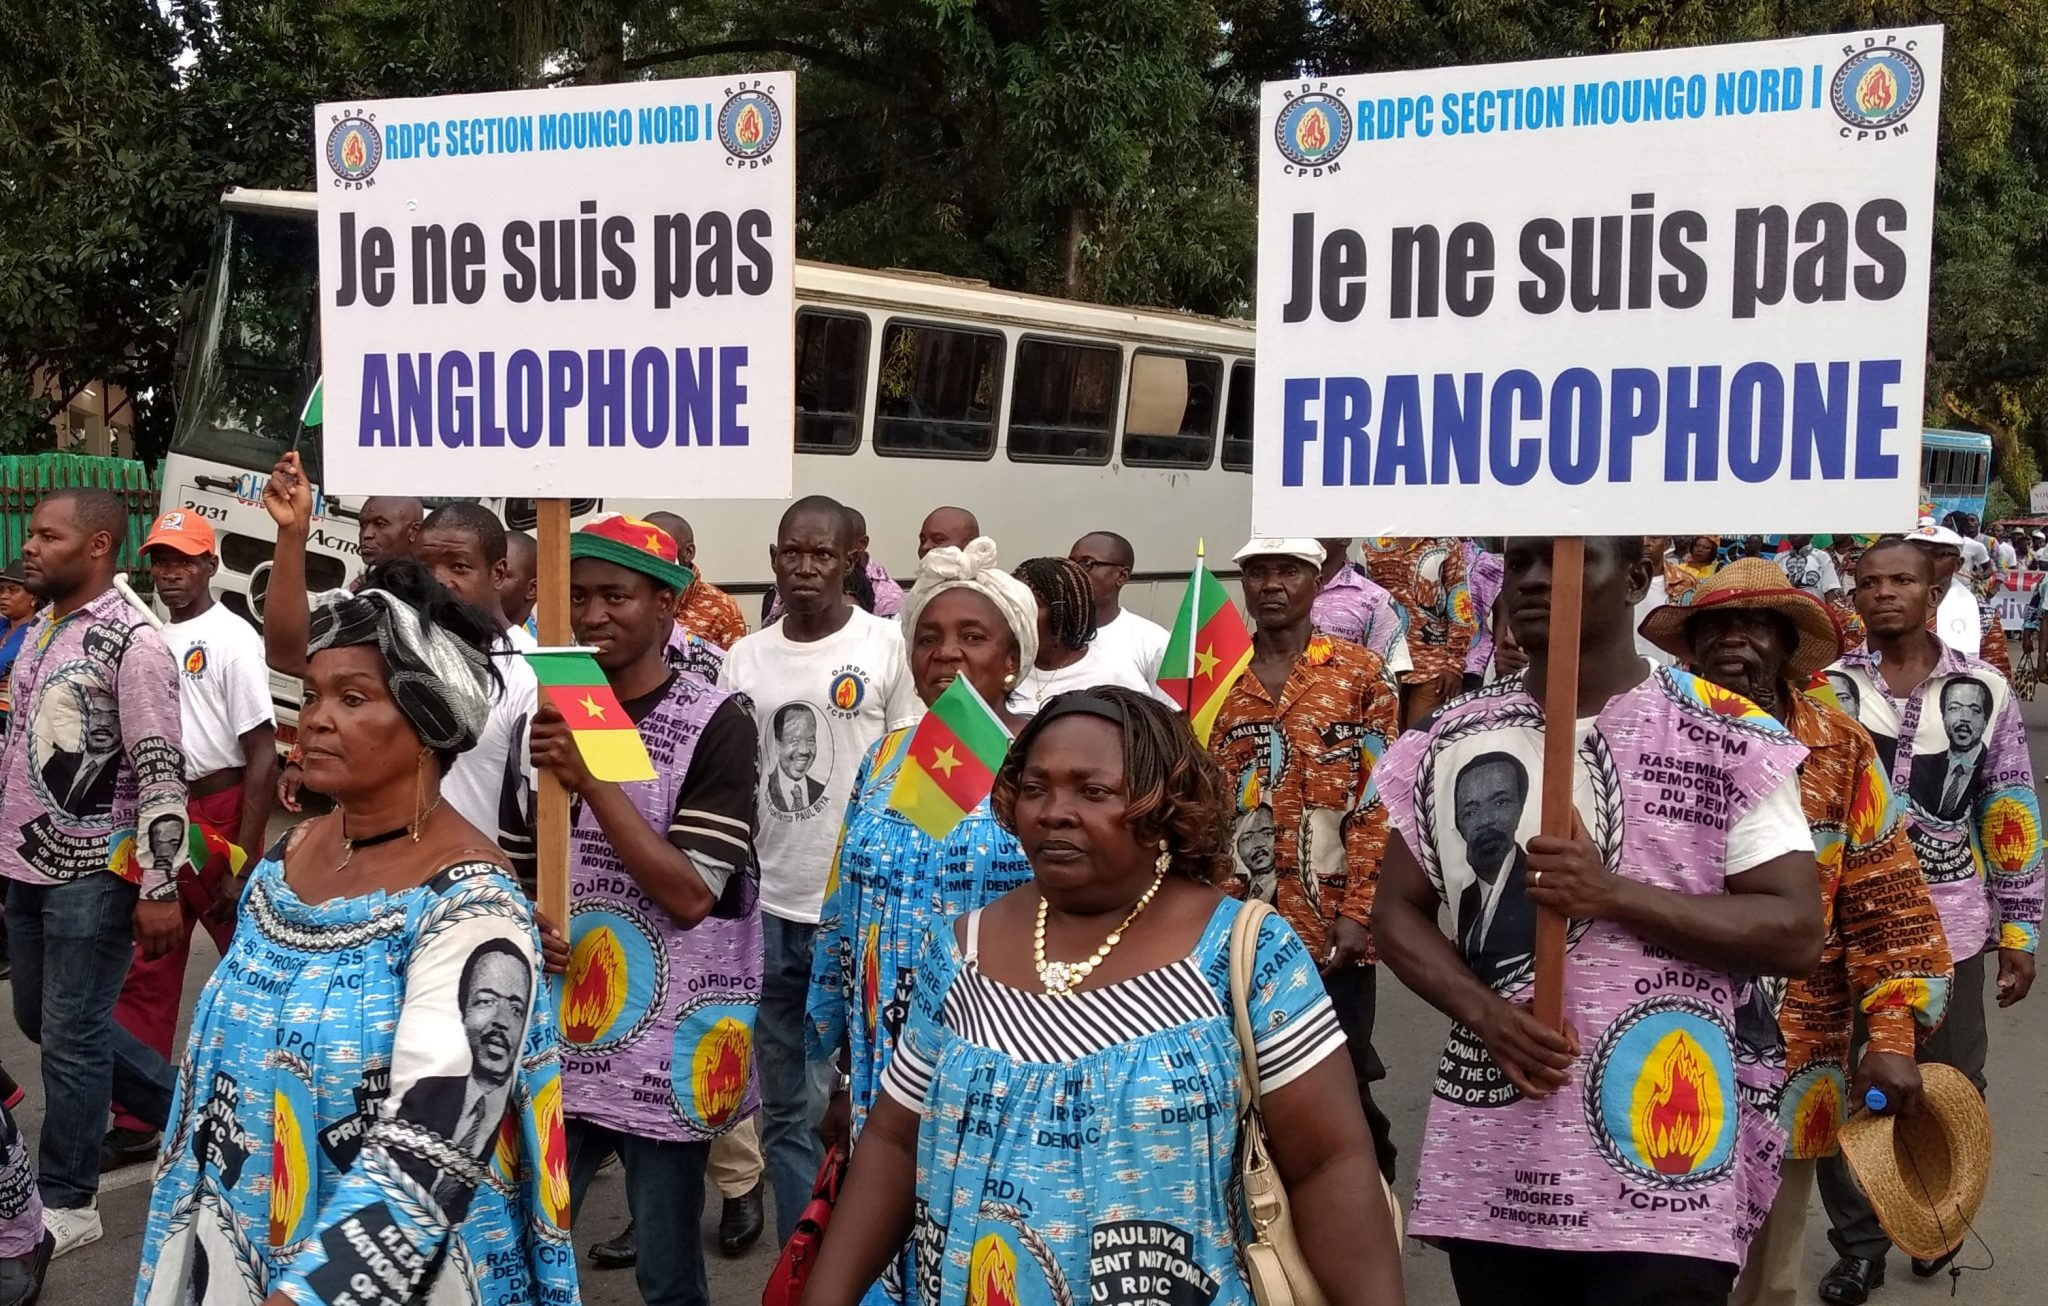 Demonstrators carry banners as they take part in a march voicing their opposition to independence or more autonomy for the Anglophone regions, in Douala | REUTERS